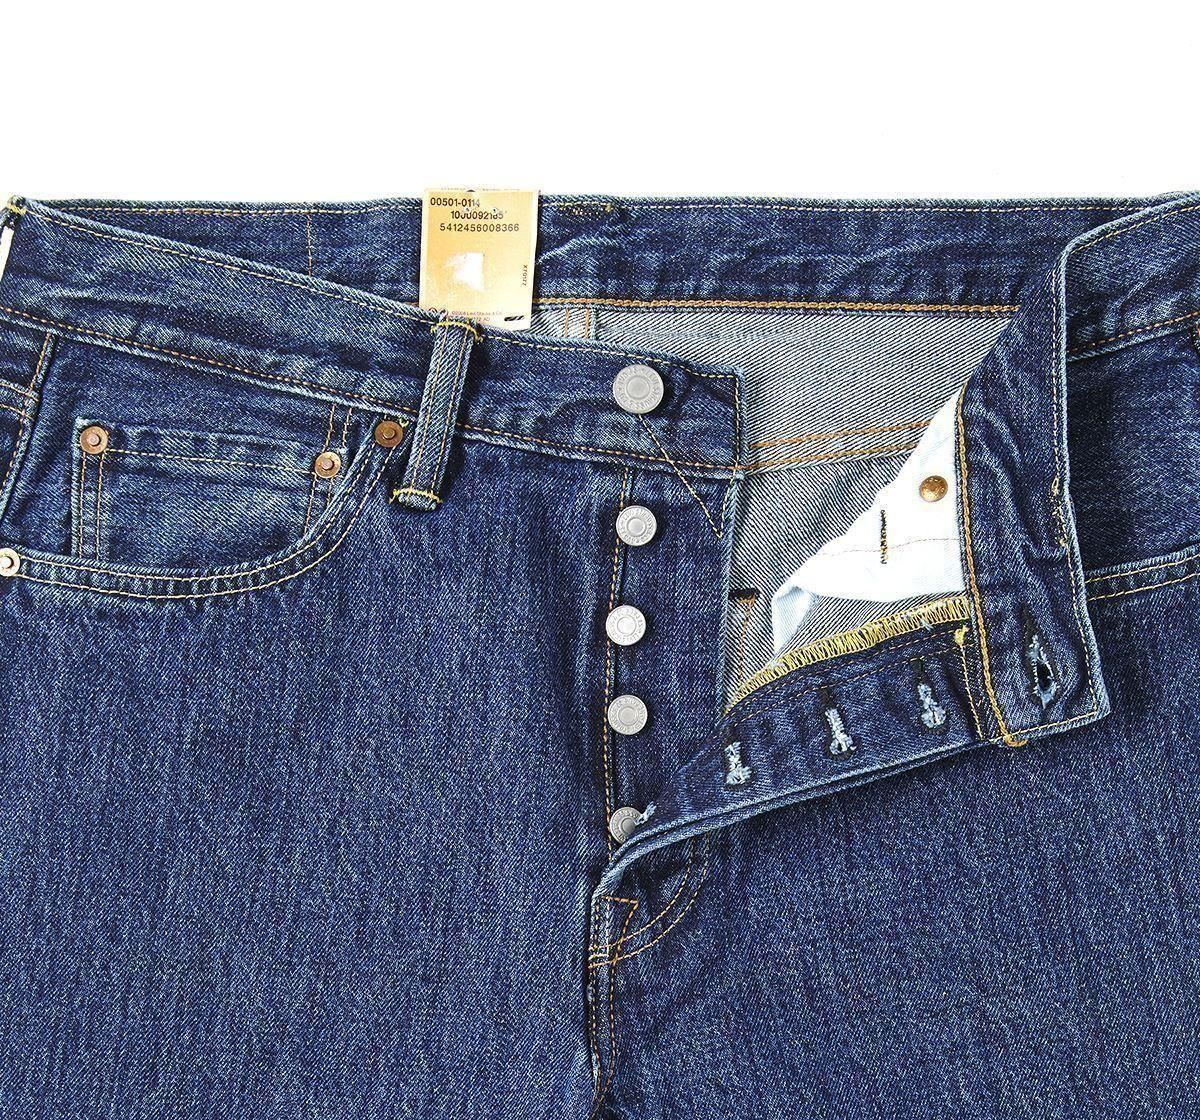 You searched for: jeans buttons! Etsy is the home to thousands of handmade, vintage, and one-of-a-kind products and gifts related to your search. No matter what you're looking for or where you are in the world, our global marketplace of sellers can help you find unique and affordable options. Let's get started!